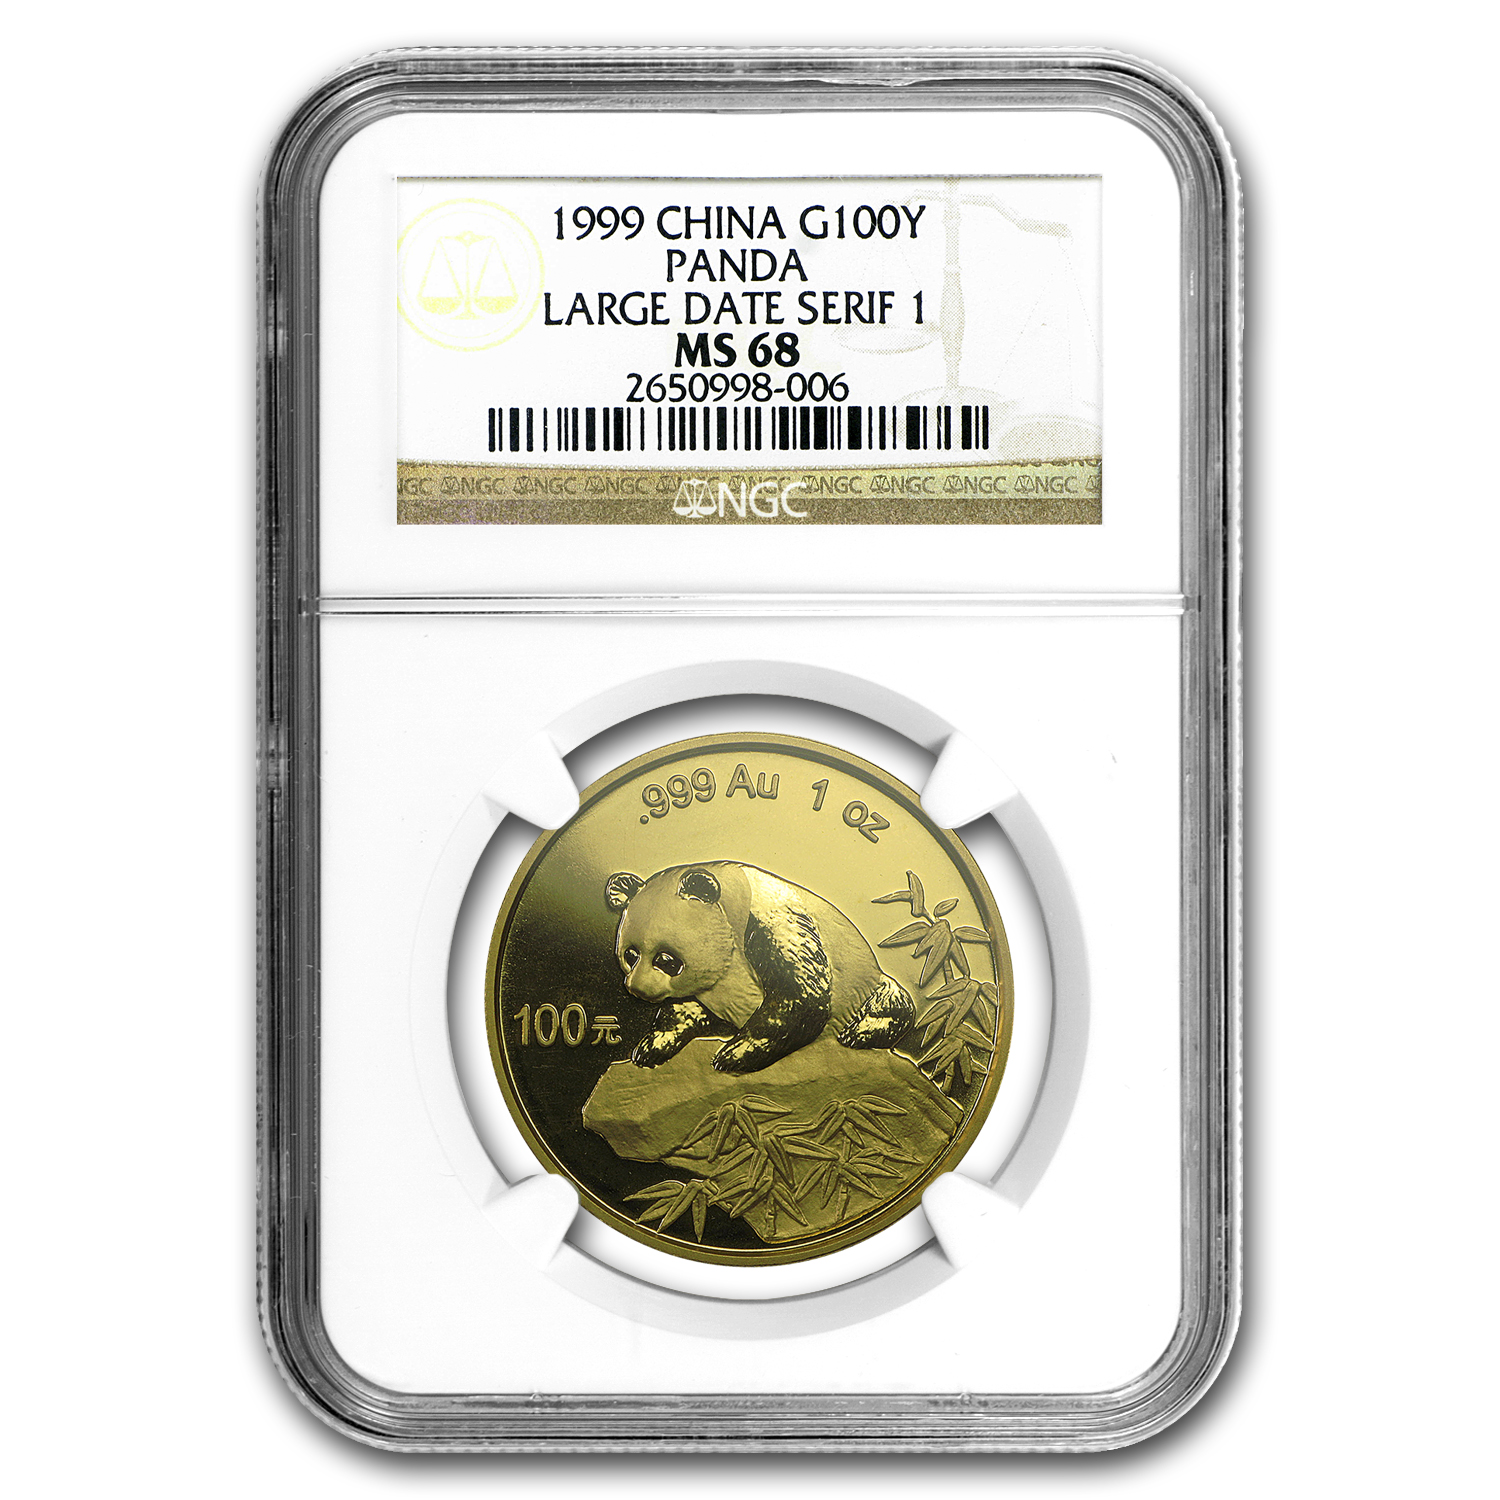 1999 1 oz Gold Chinese Panda MS-68 NGC - Large Date (Serif 1)